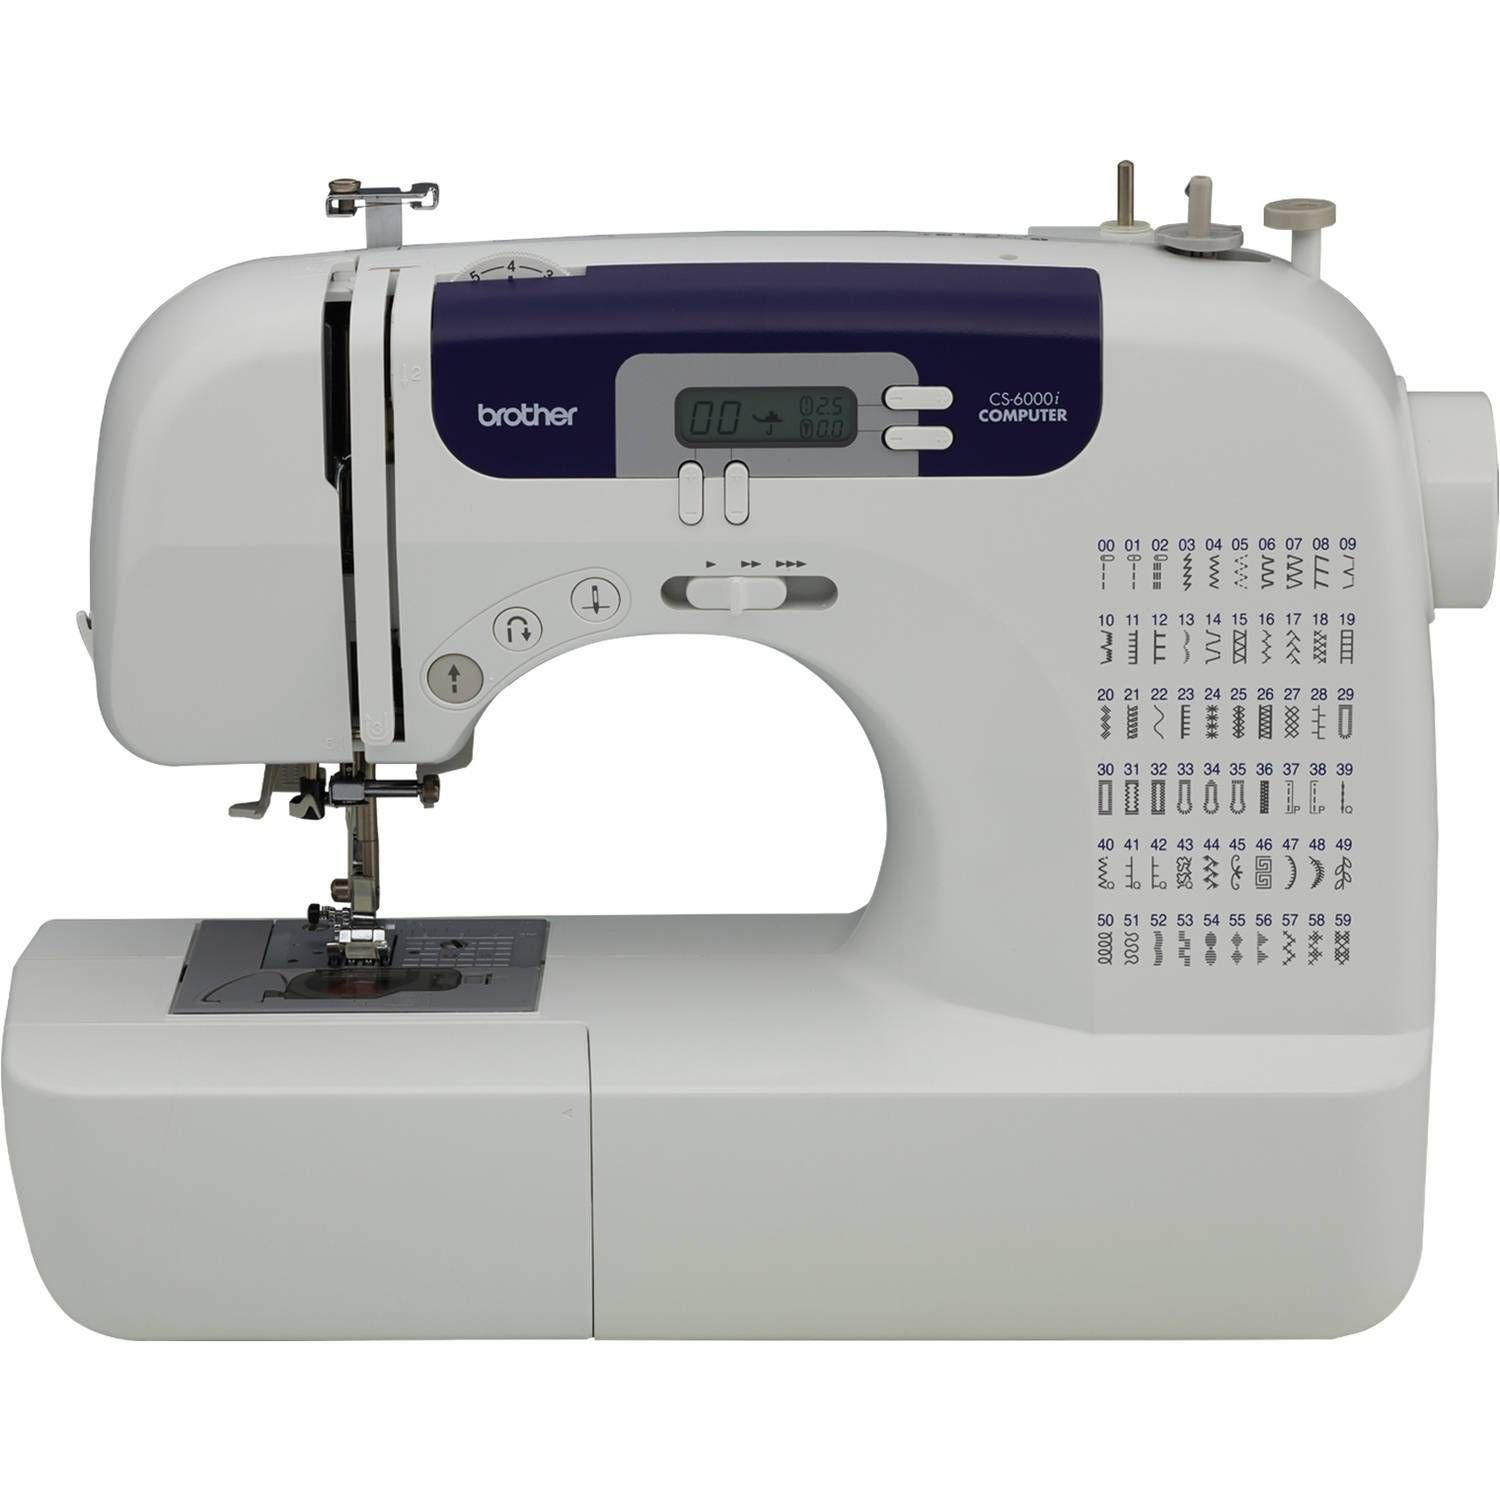 Brother CS6000i Sewing Machine With 60 Built In Stitches